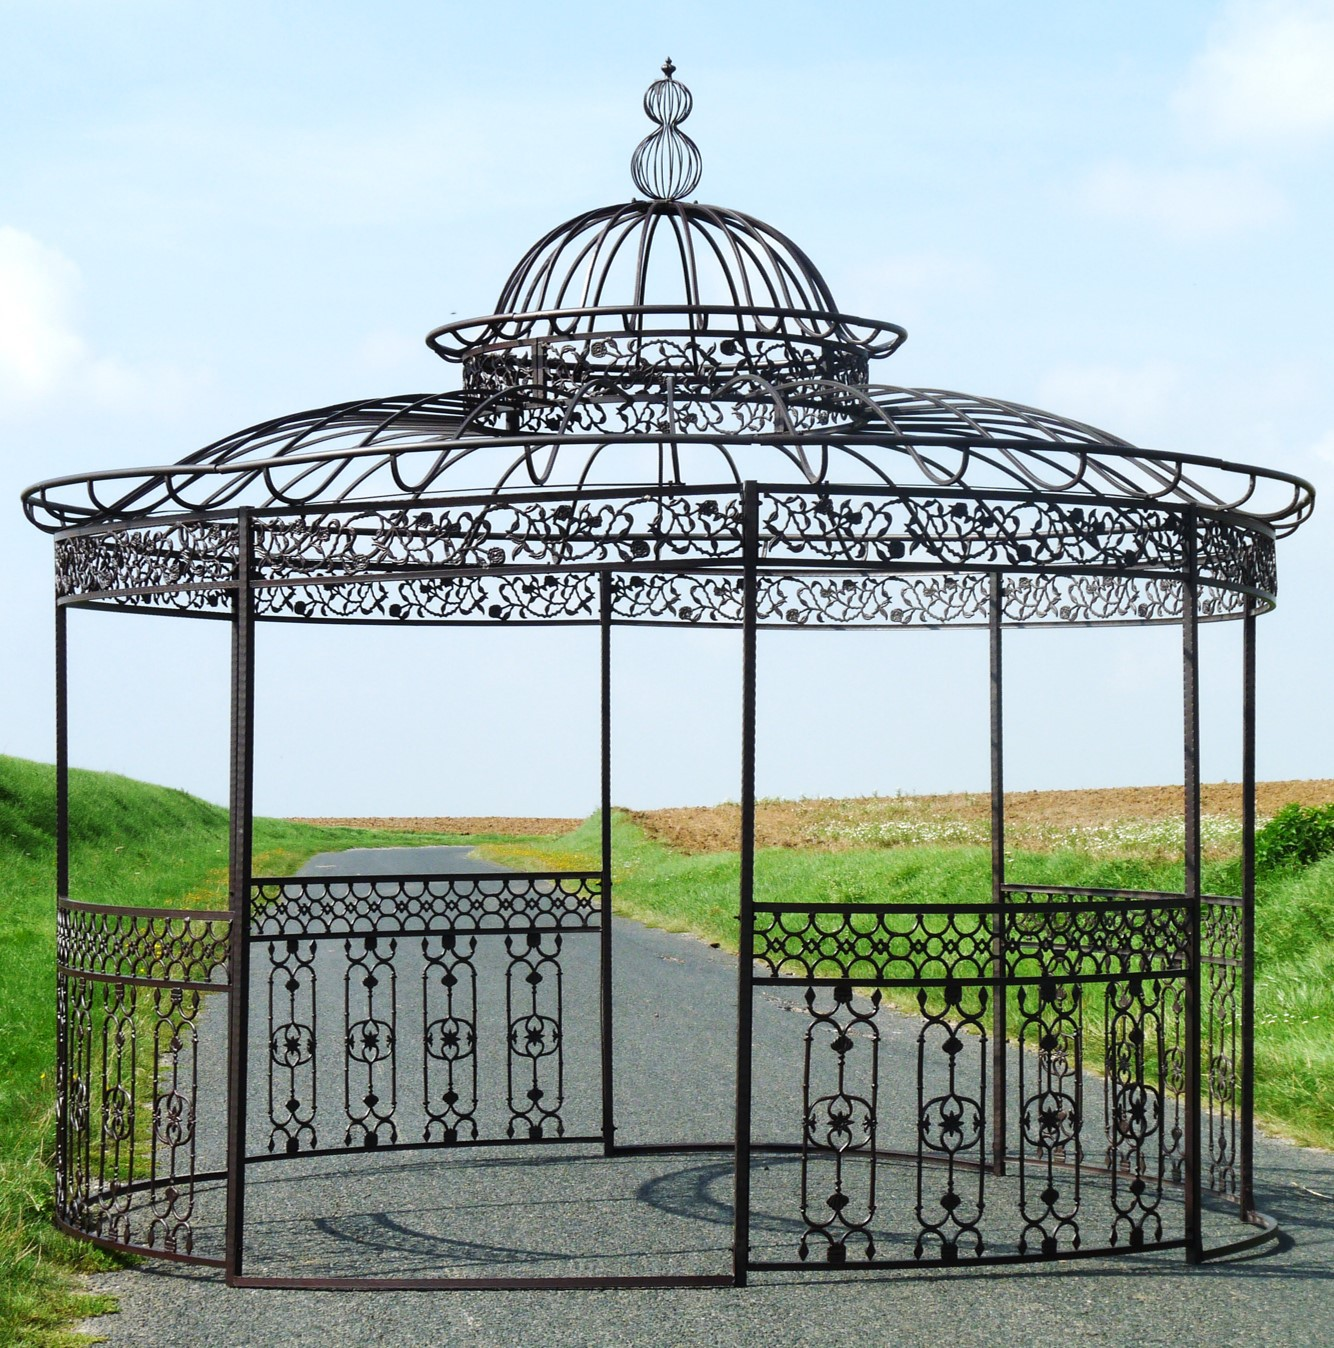 Gloriette fer forge fashion designs - Pergolas de jardin ...